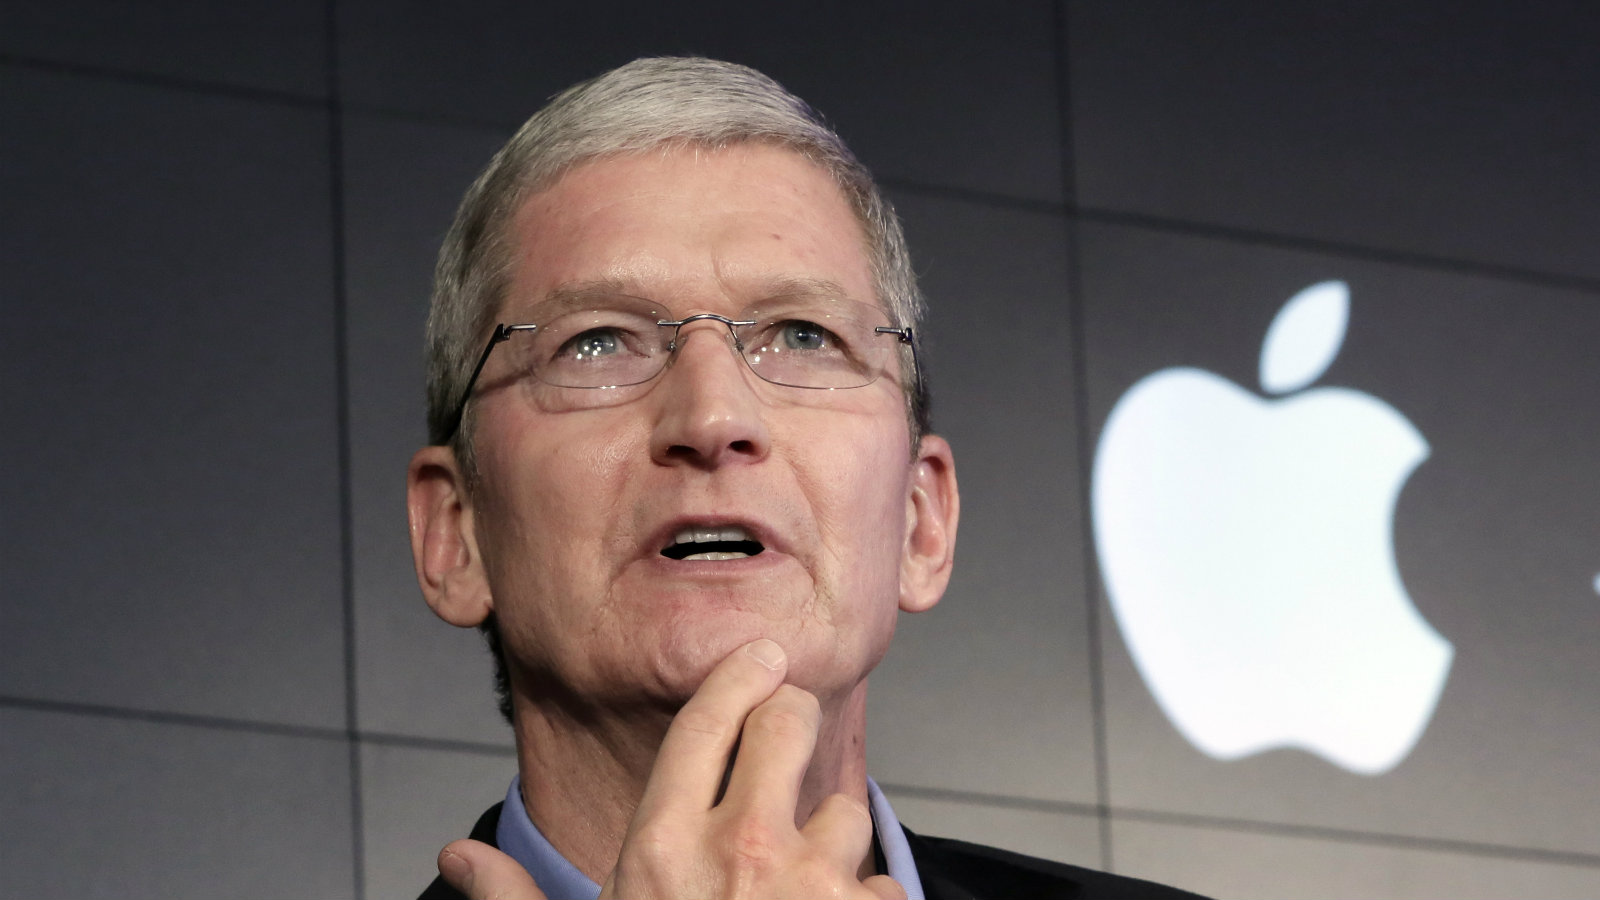 "In this April 30, 2015 file photo, Apple CEO Tim Cook responds to a question during a news conference at IBM Watson headquarters, in New York. Apple CEO Tim Cook laid out his company's plans for the vast Indian market in a meeting Saturday, May 21, 2016, with Prime Minister Narendra Modi, who in turn sought Apple's support for his ""Digital India"" initiative focusing on e-education, health and increasing farmers' incomes."